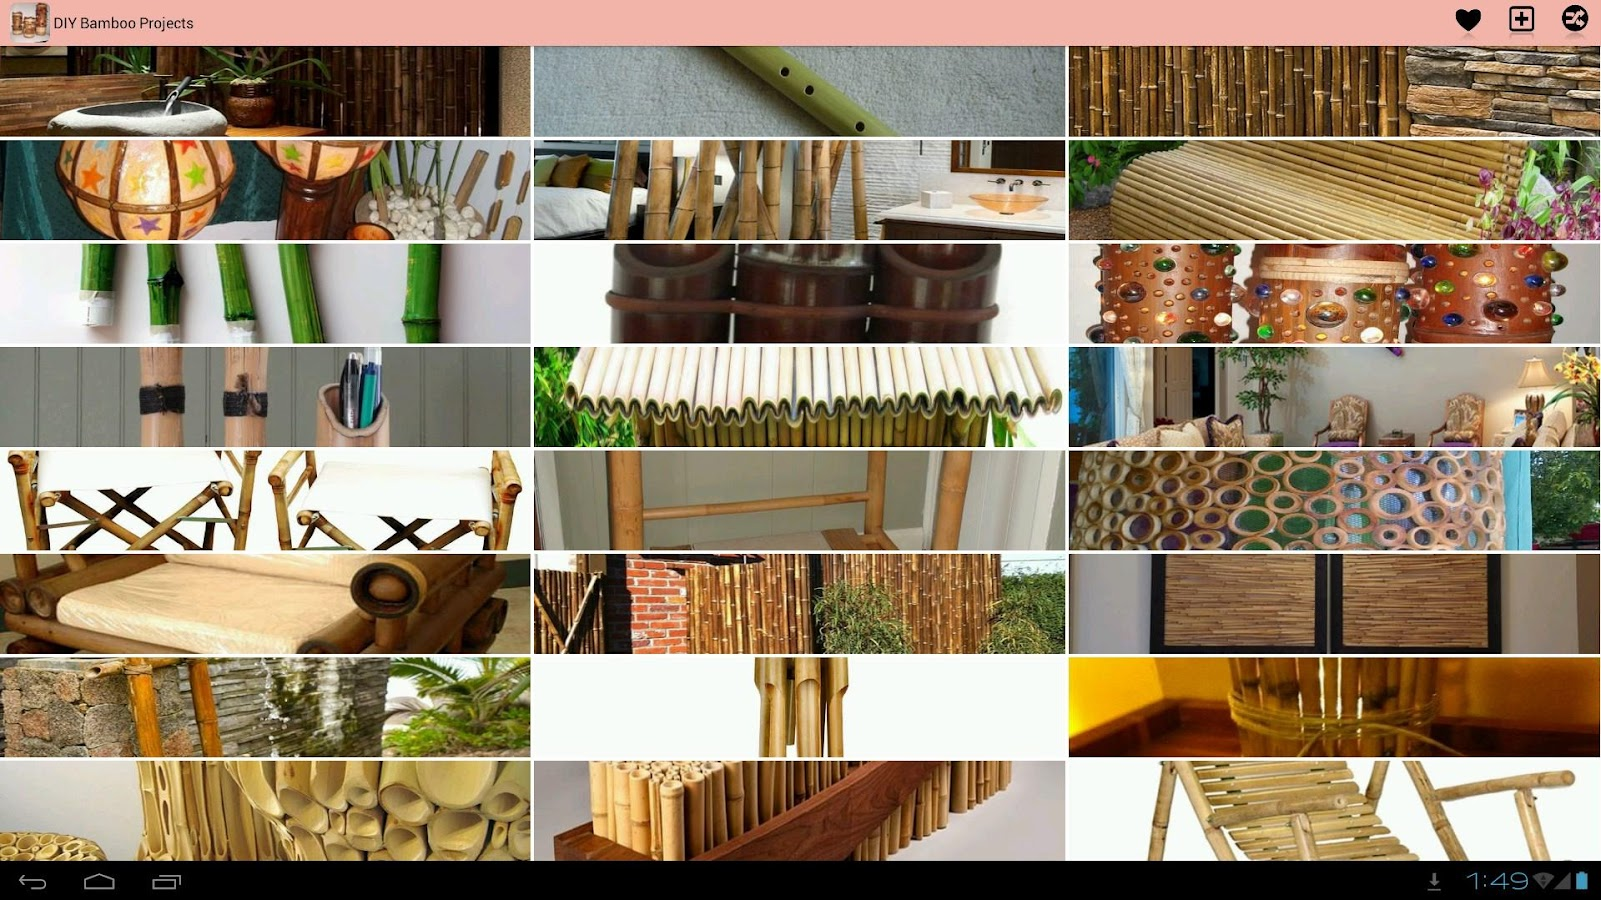 29 beauty bamboo craft ideas diy bamboo projects android apps on google play for bamboo craft ideas diy 193tgx solutioingenieria Choice Image